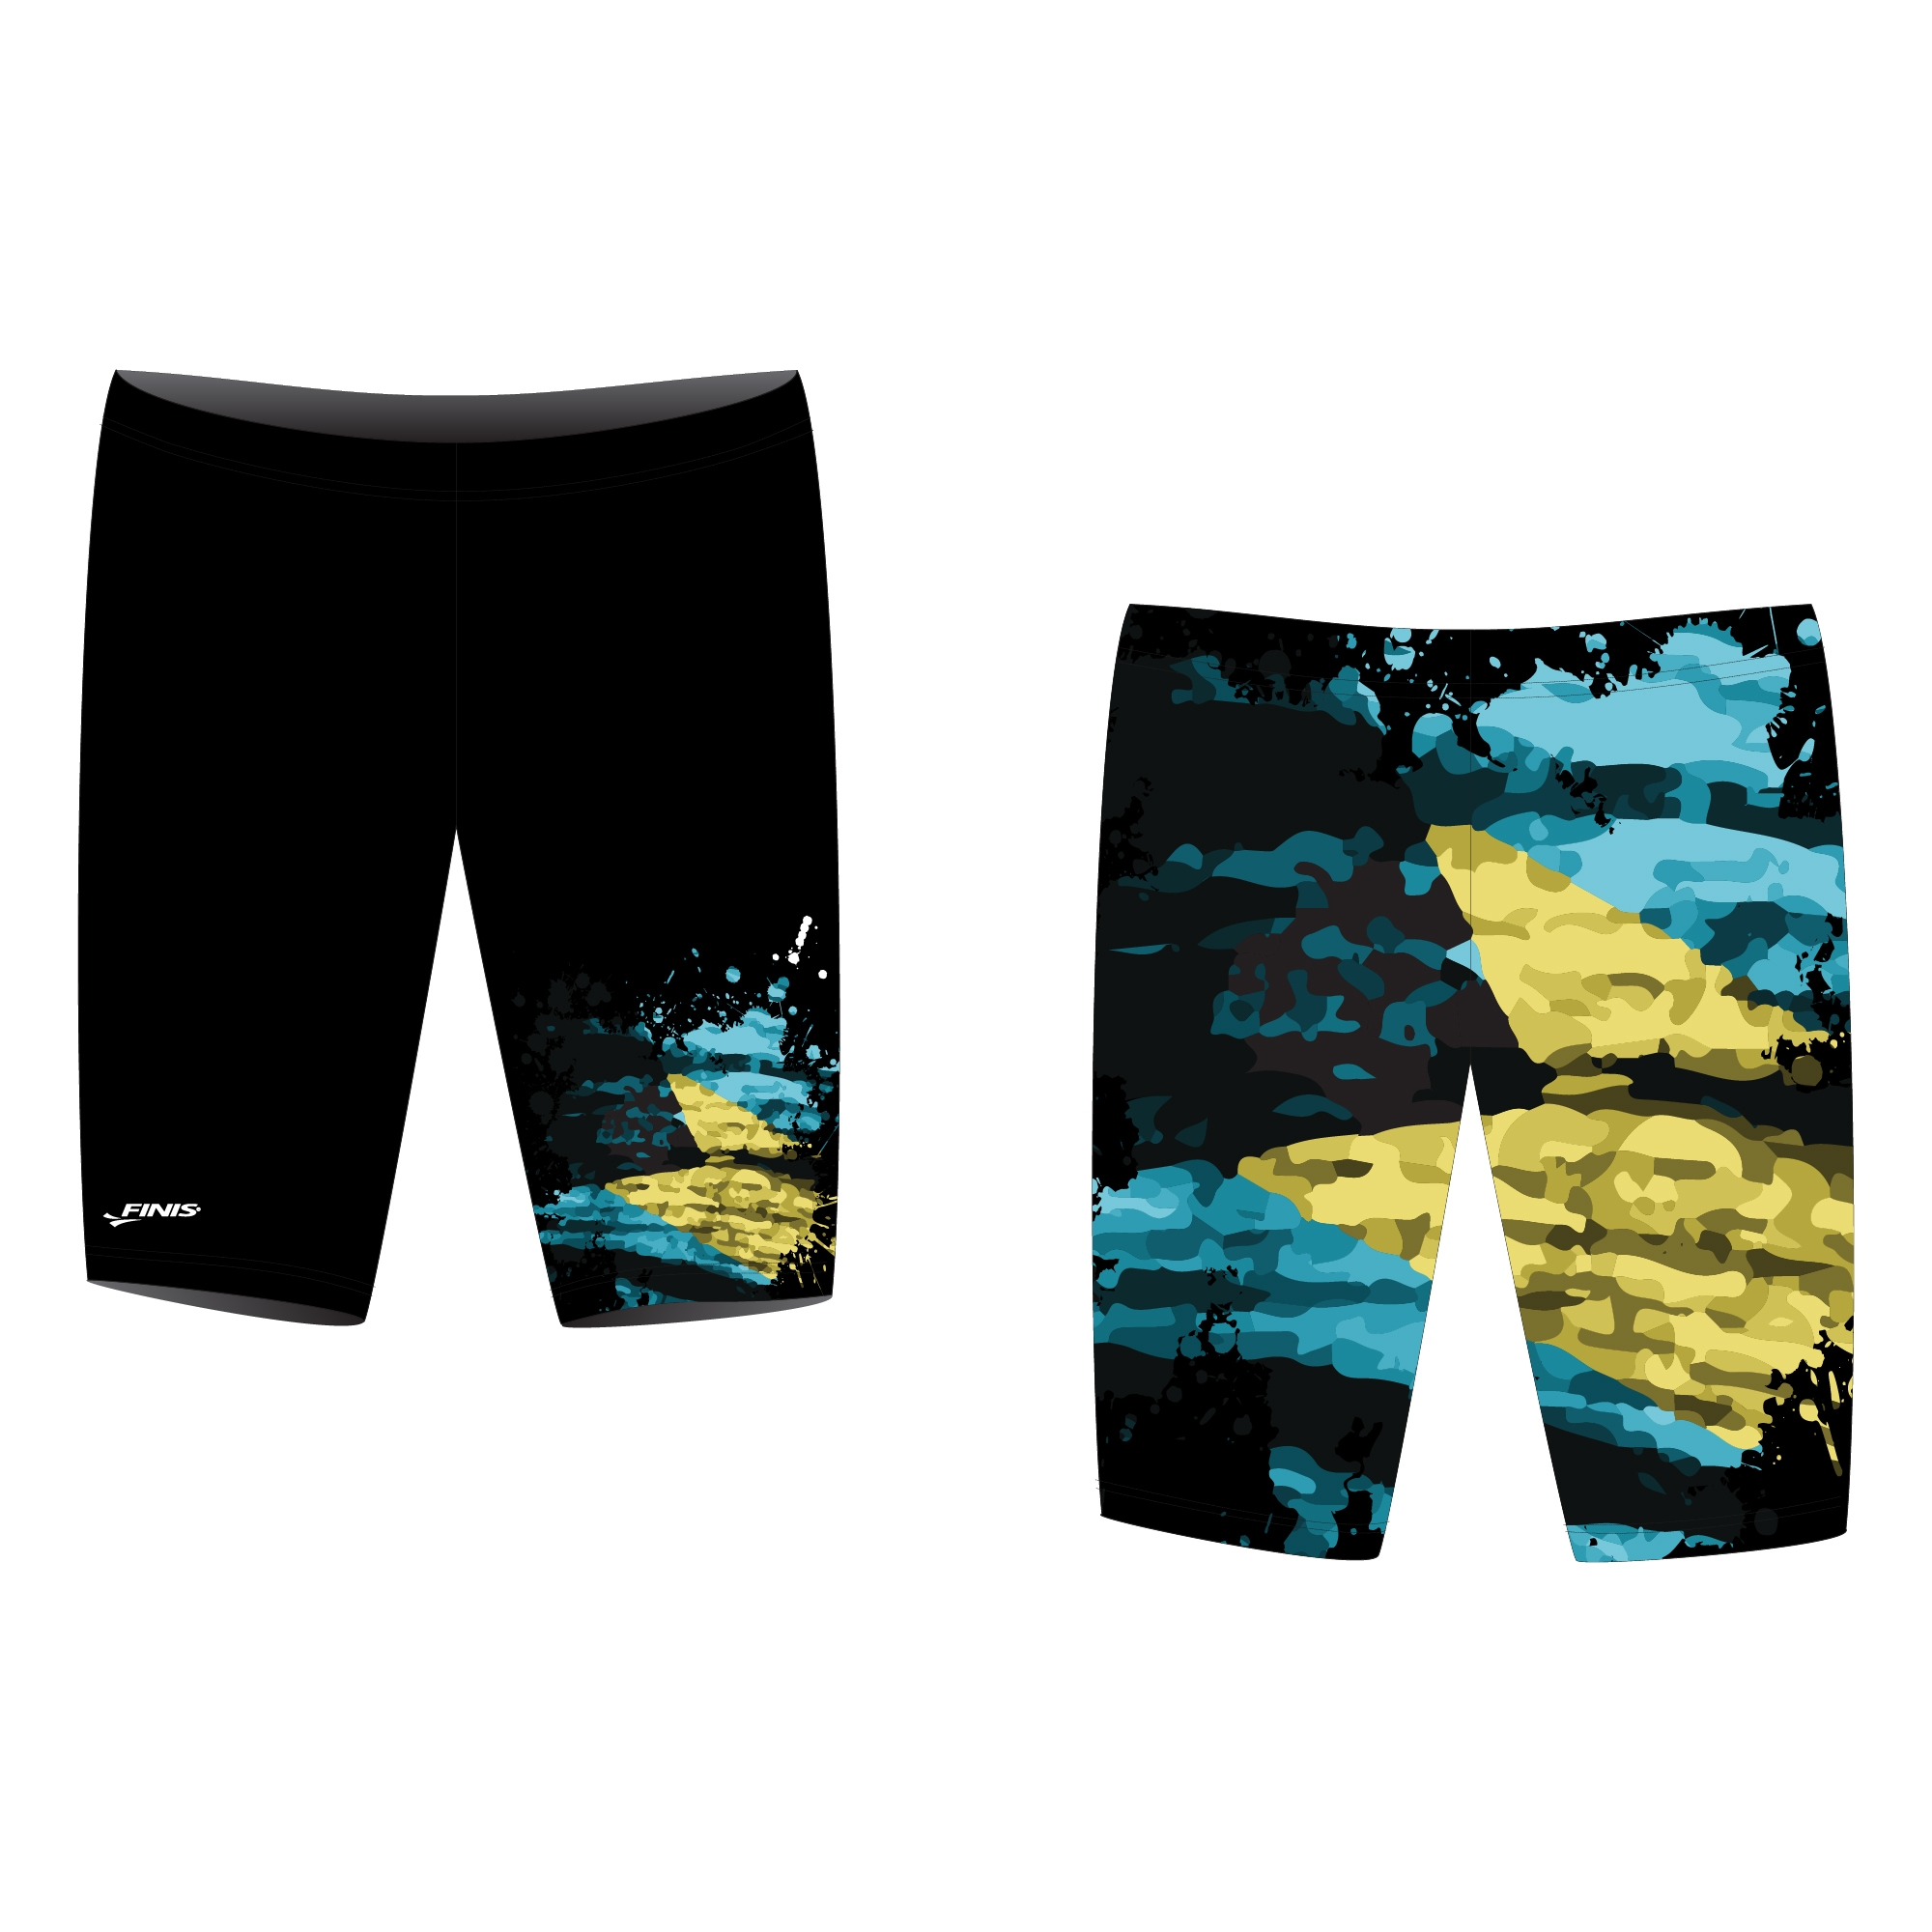 Black finis custom jammer swimsuit proof with hazy paint splatter design, colors include yellow and cyan